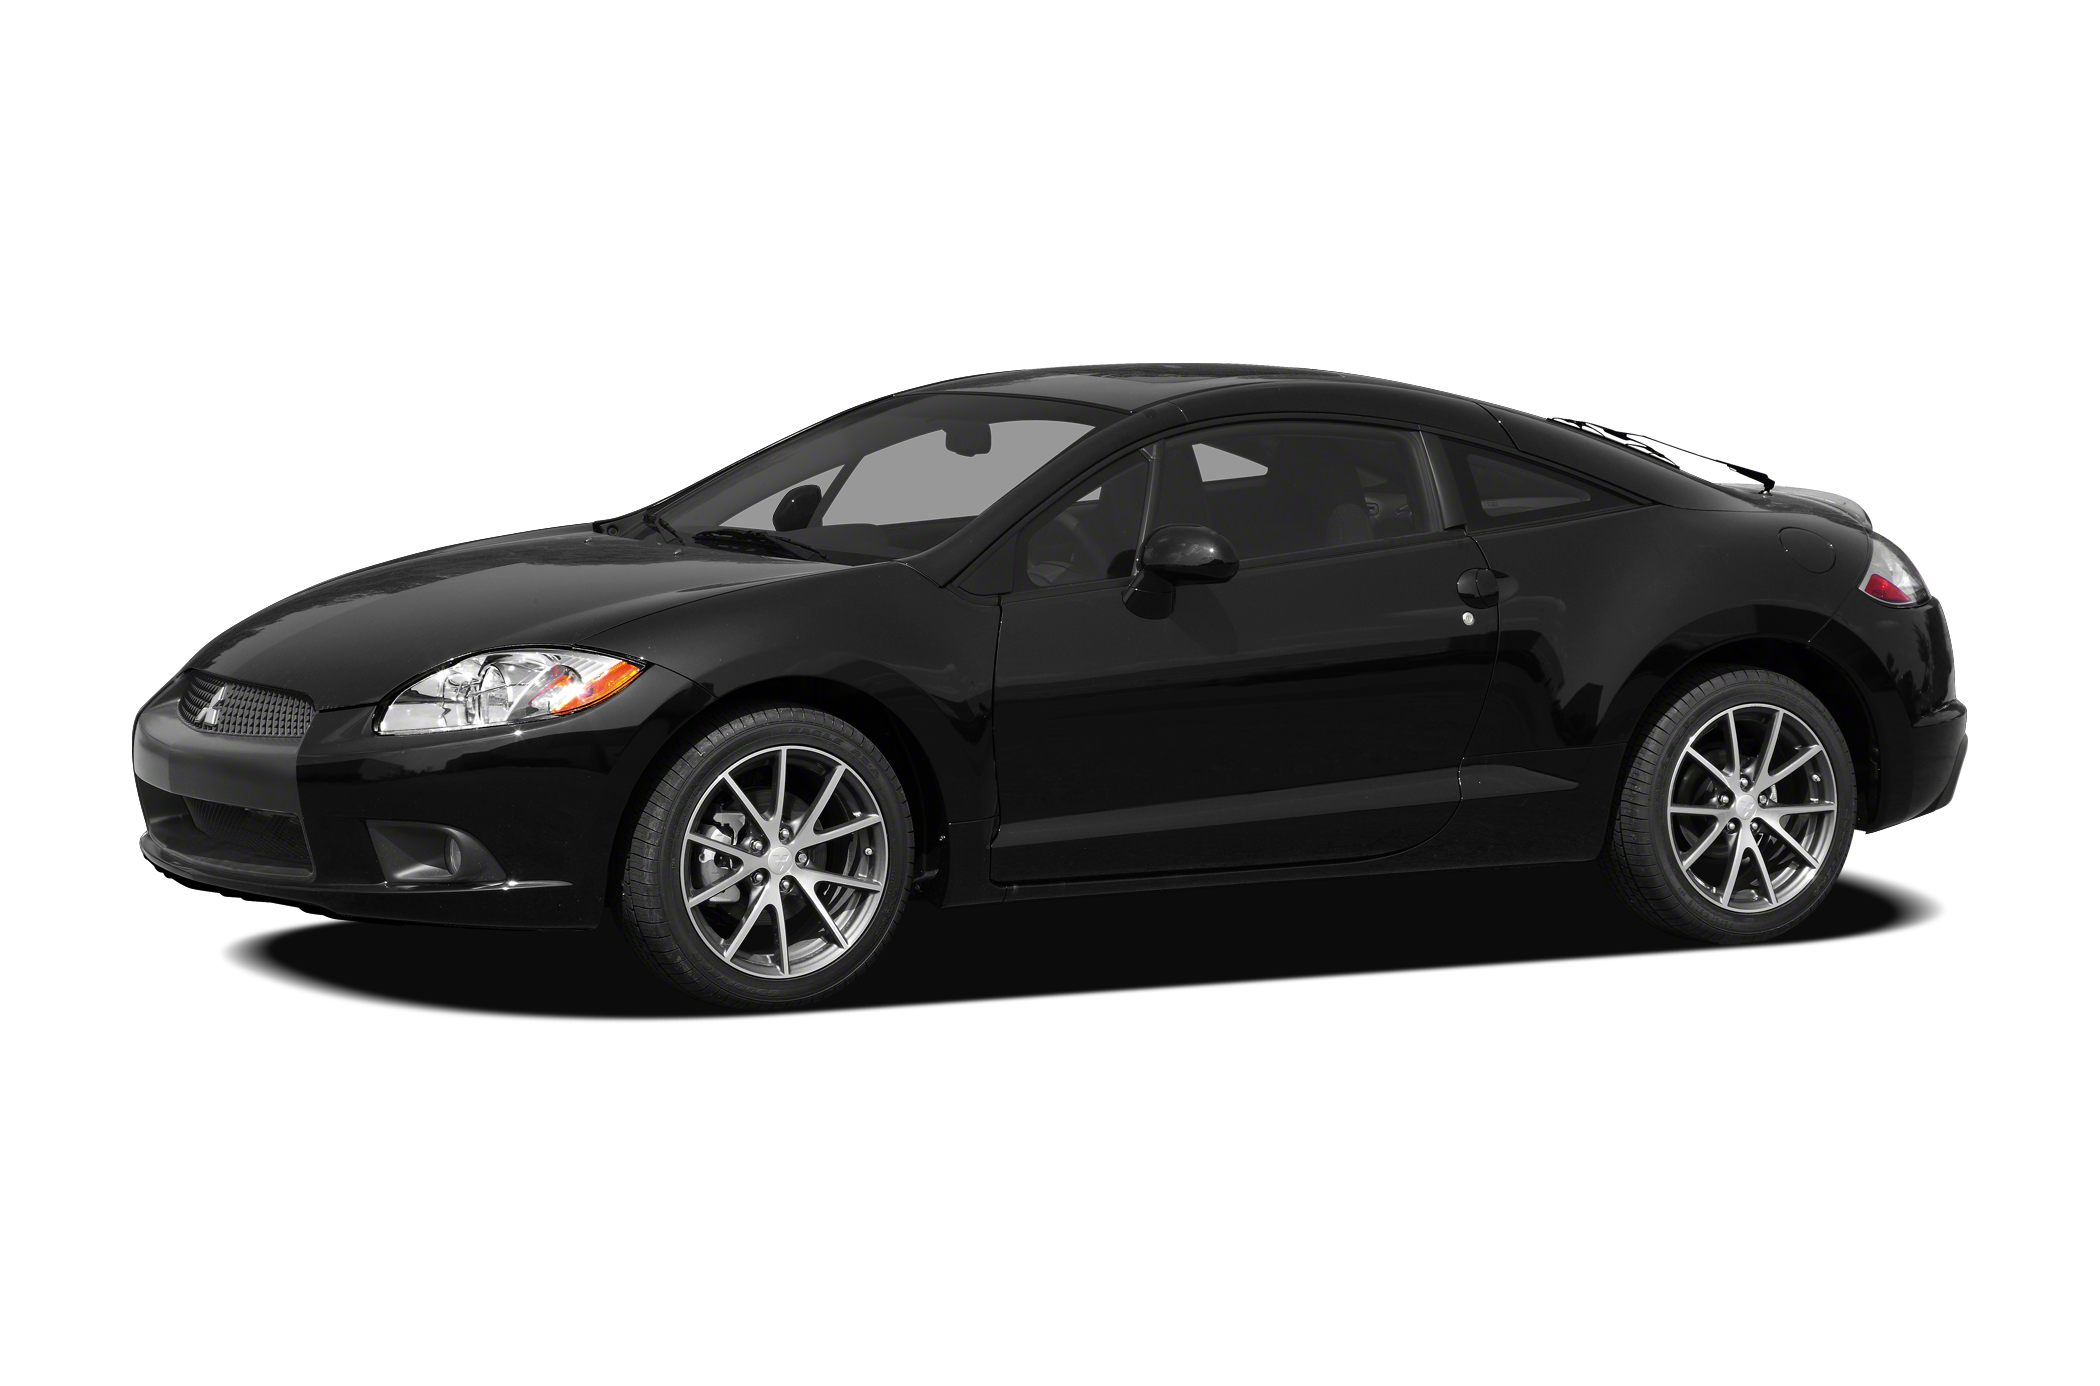 2010 Mitsubishi Eclipse GT Coupe for sale in Bedford for $15,500 with 62,357 miles